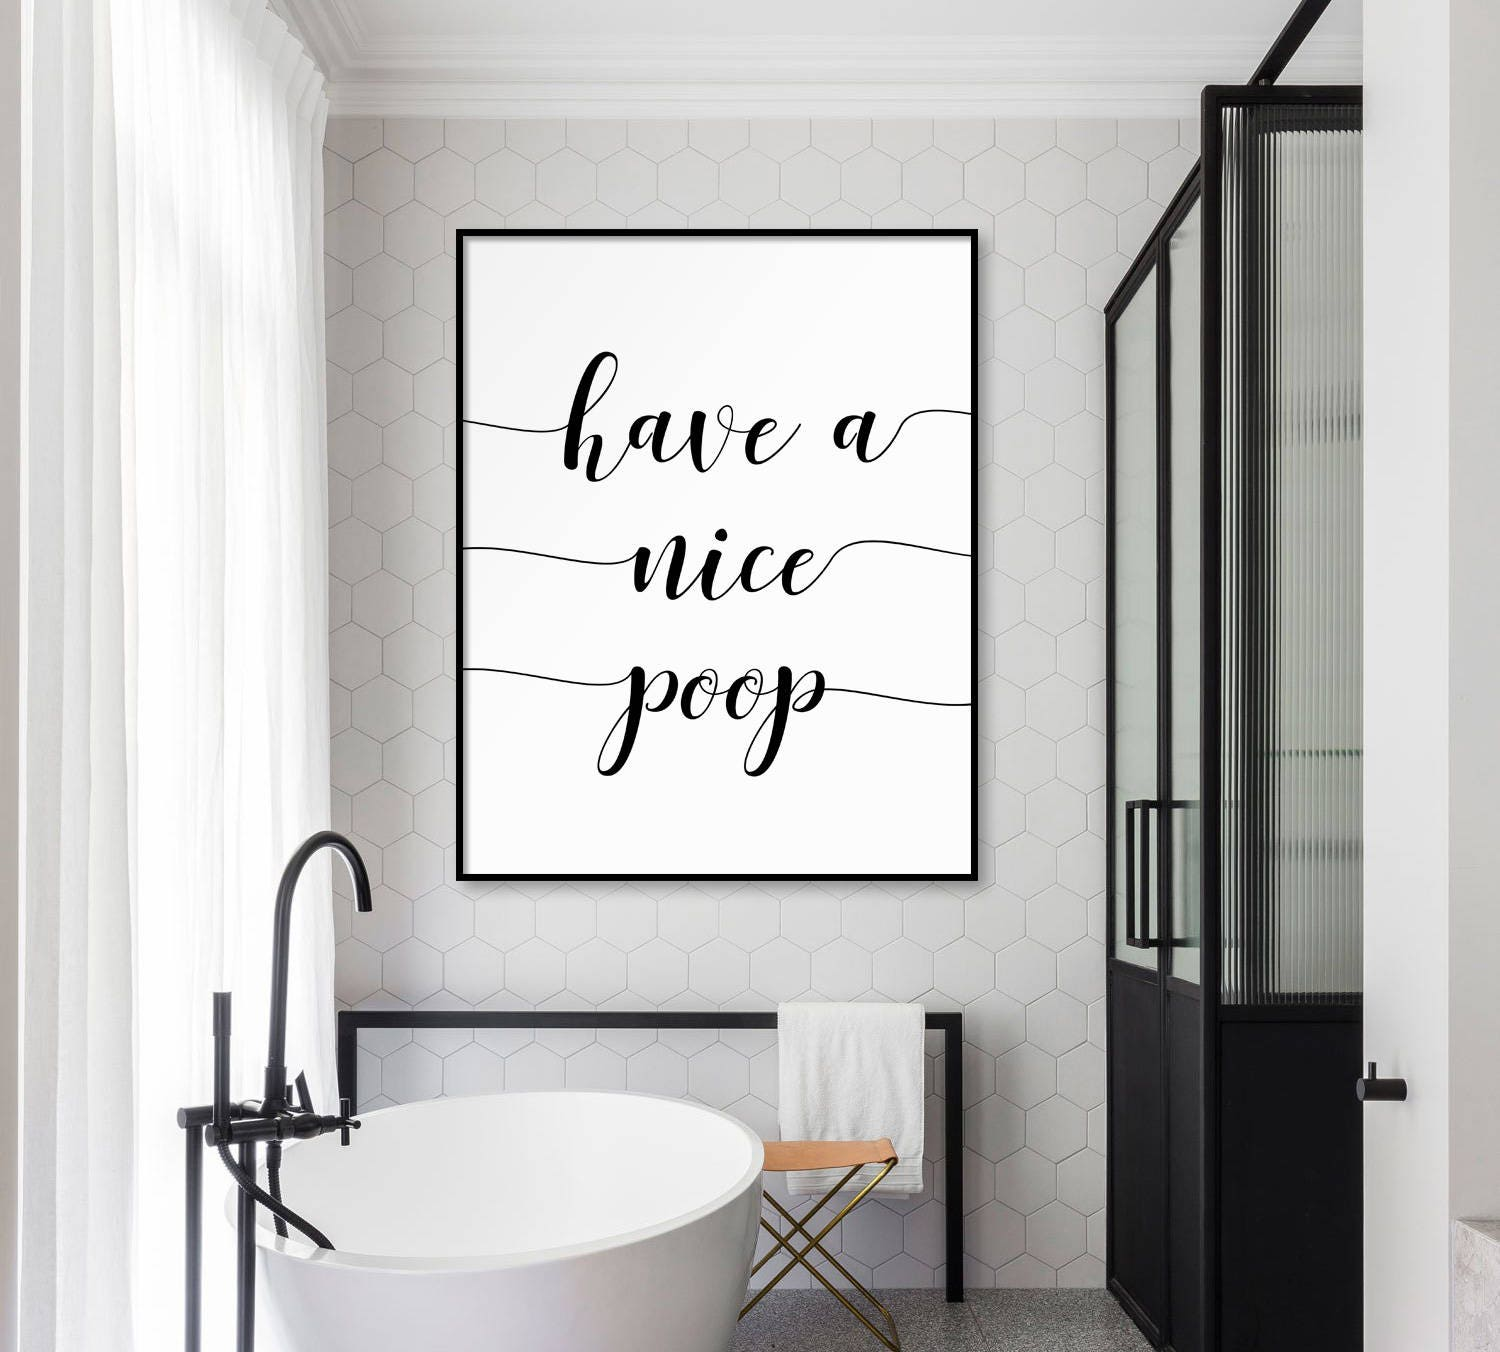 Funny Pictures For Bathroom: Funny Bathroom Decor Have A Nice Poop Bathroom Quote